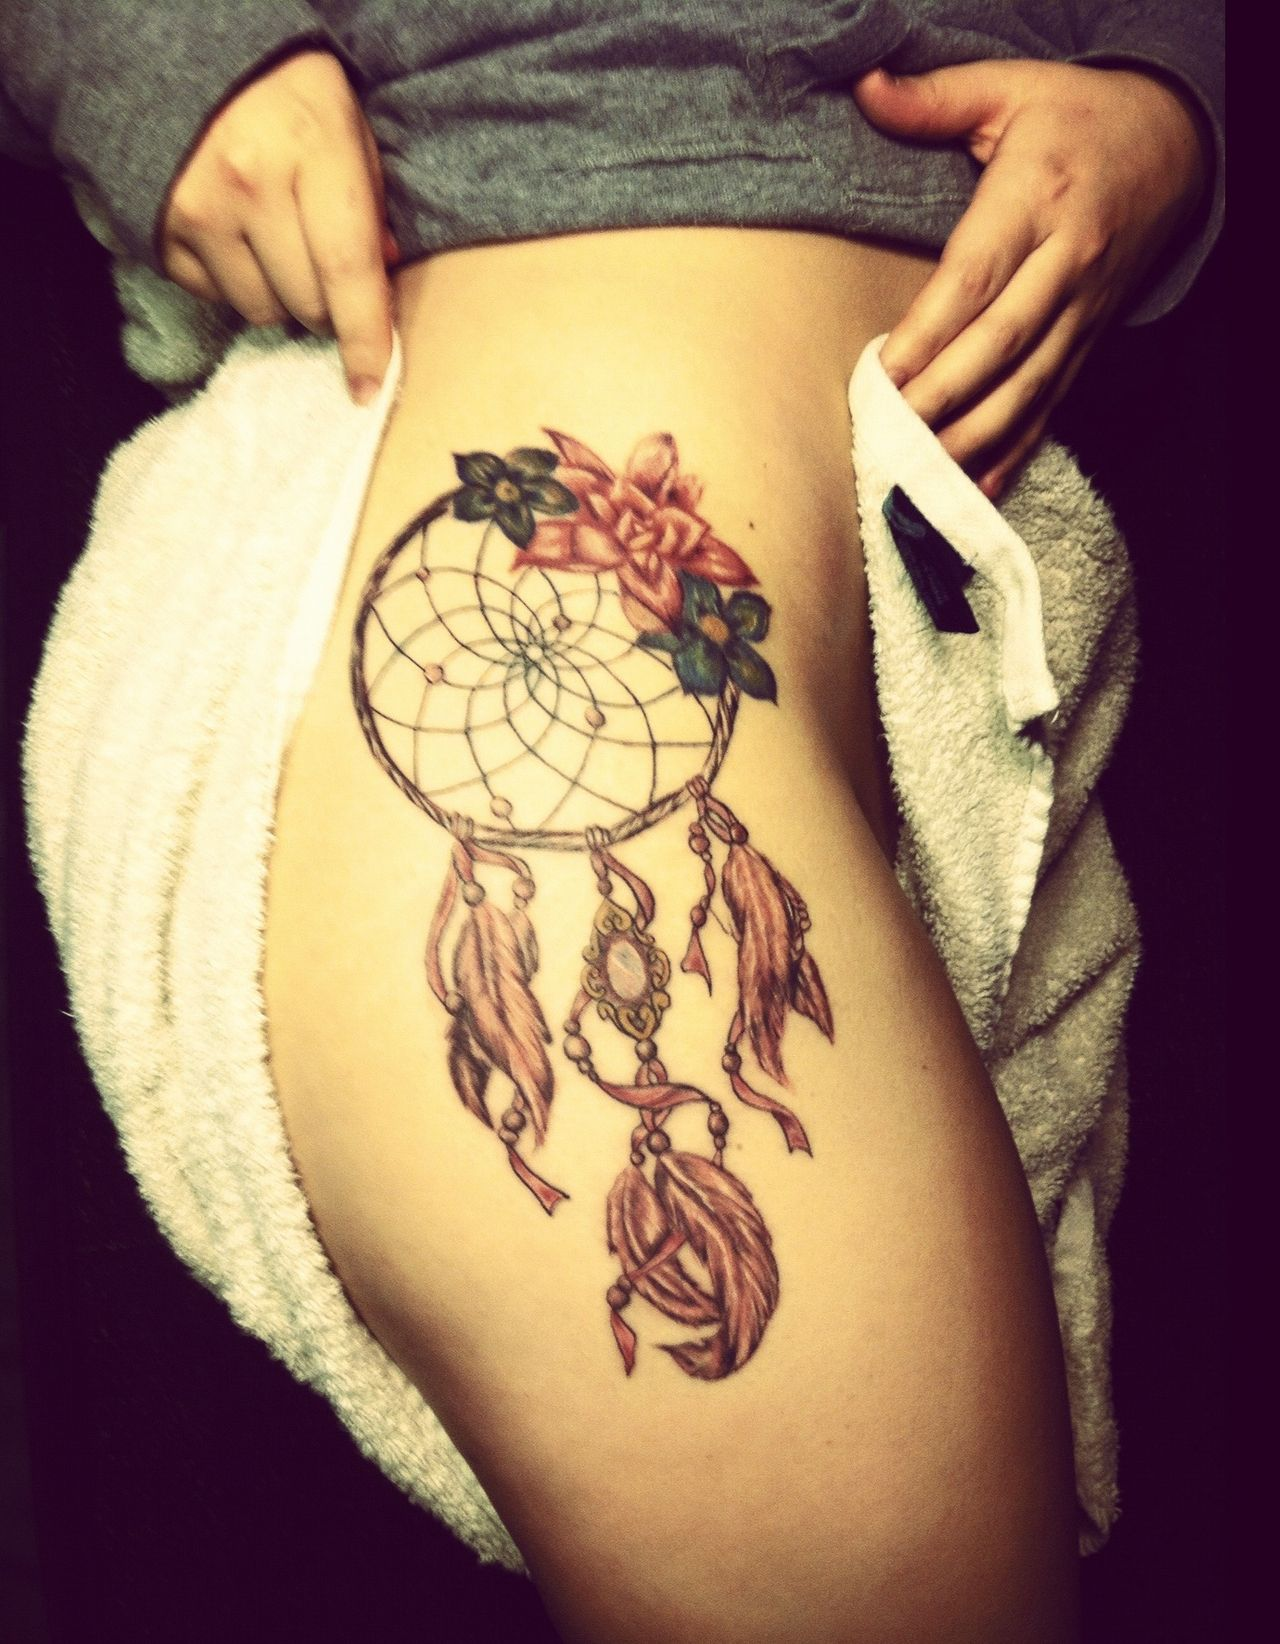 Dream Catcher Tattoo On Thigh Fascinating I Love This Dream Catcher Tattoo I Have One On My Shoulder Think I 2018